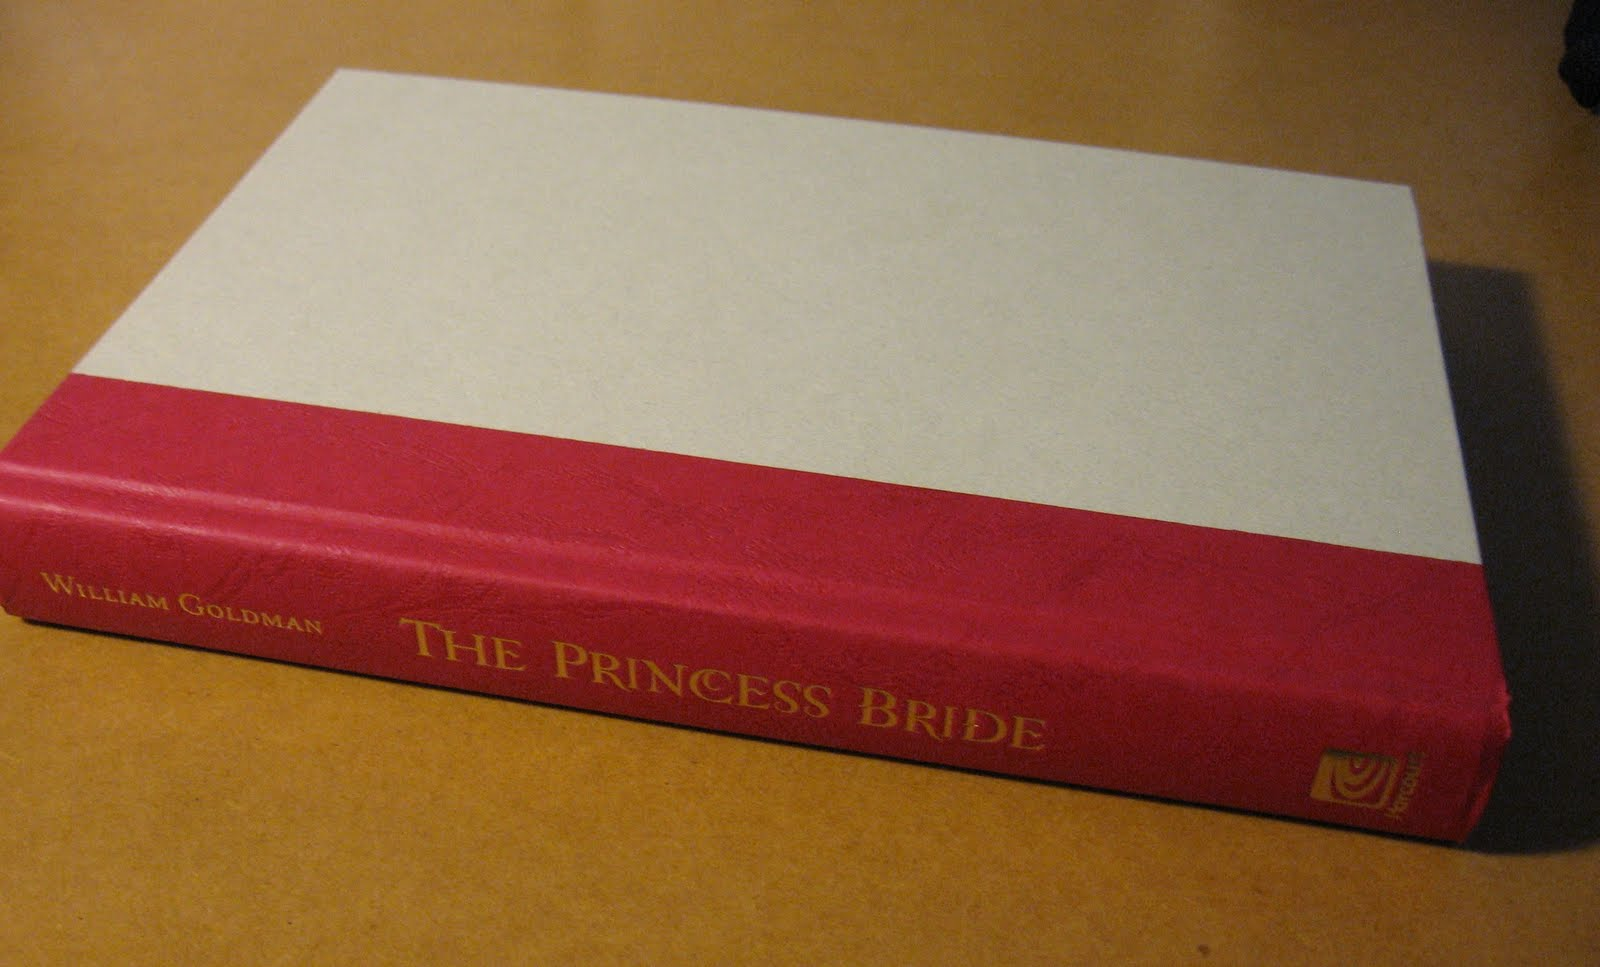 essay on the princess bride How to write literary analysis the literary essay: a step-by-step guide when you read for pleasure, your only goal is enjoyment you might find yourself reading to get caught up in an exciting story, to learn about an interesting time or place, or just to pass time.